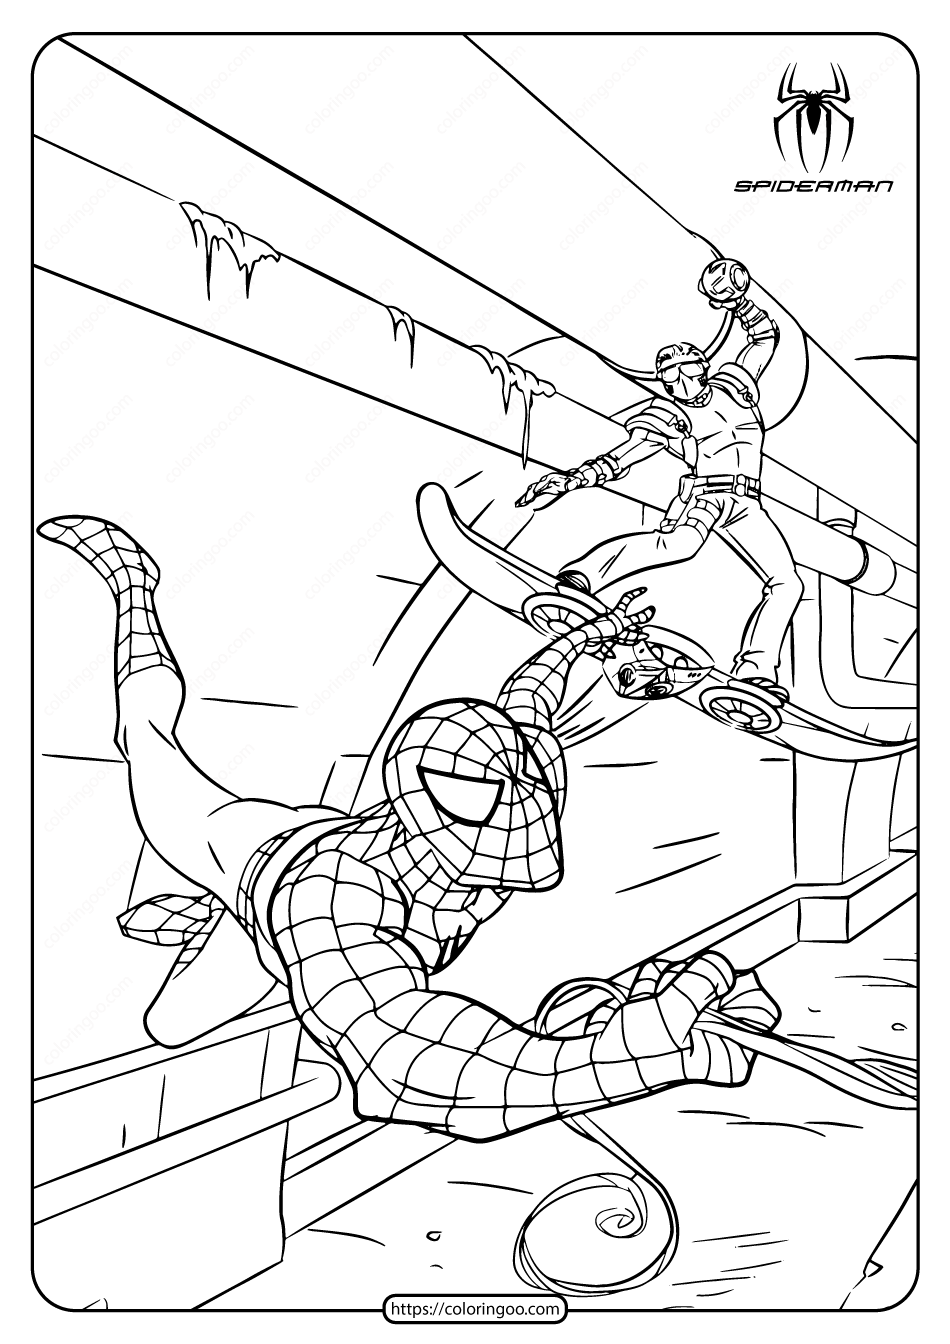 Marvel Spiderman Pdf Coloring Pages